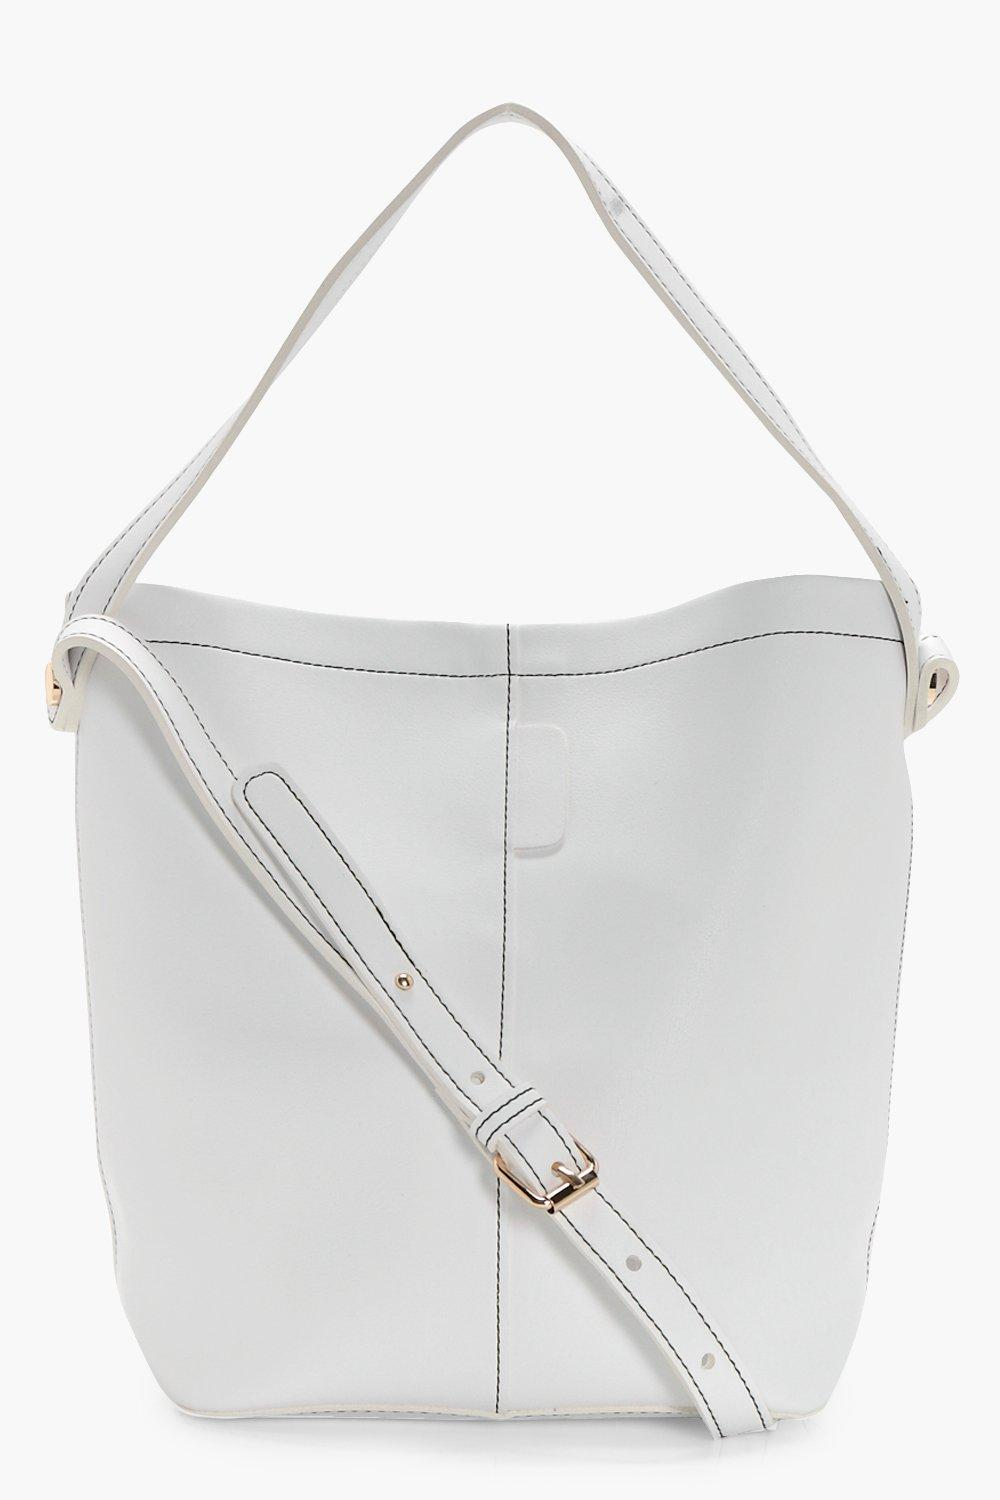 Structured Bucket Bag - white - Lottie Structured